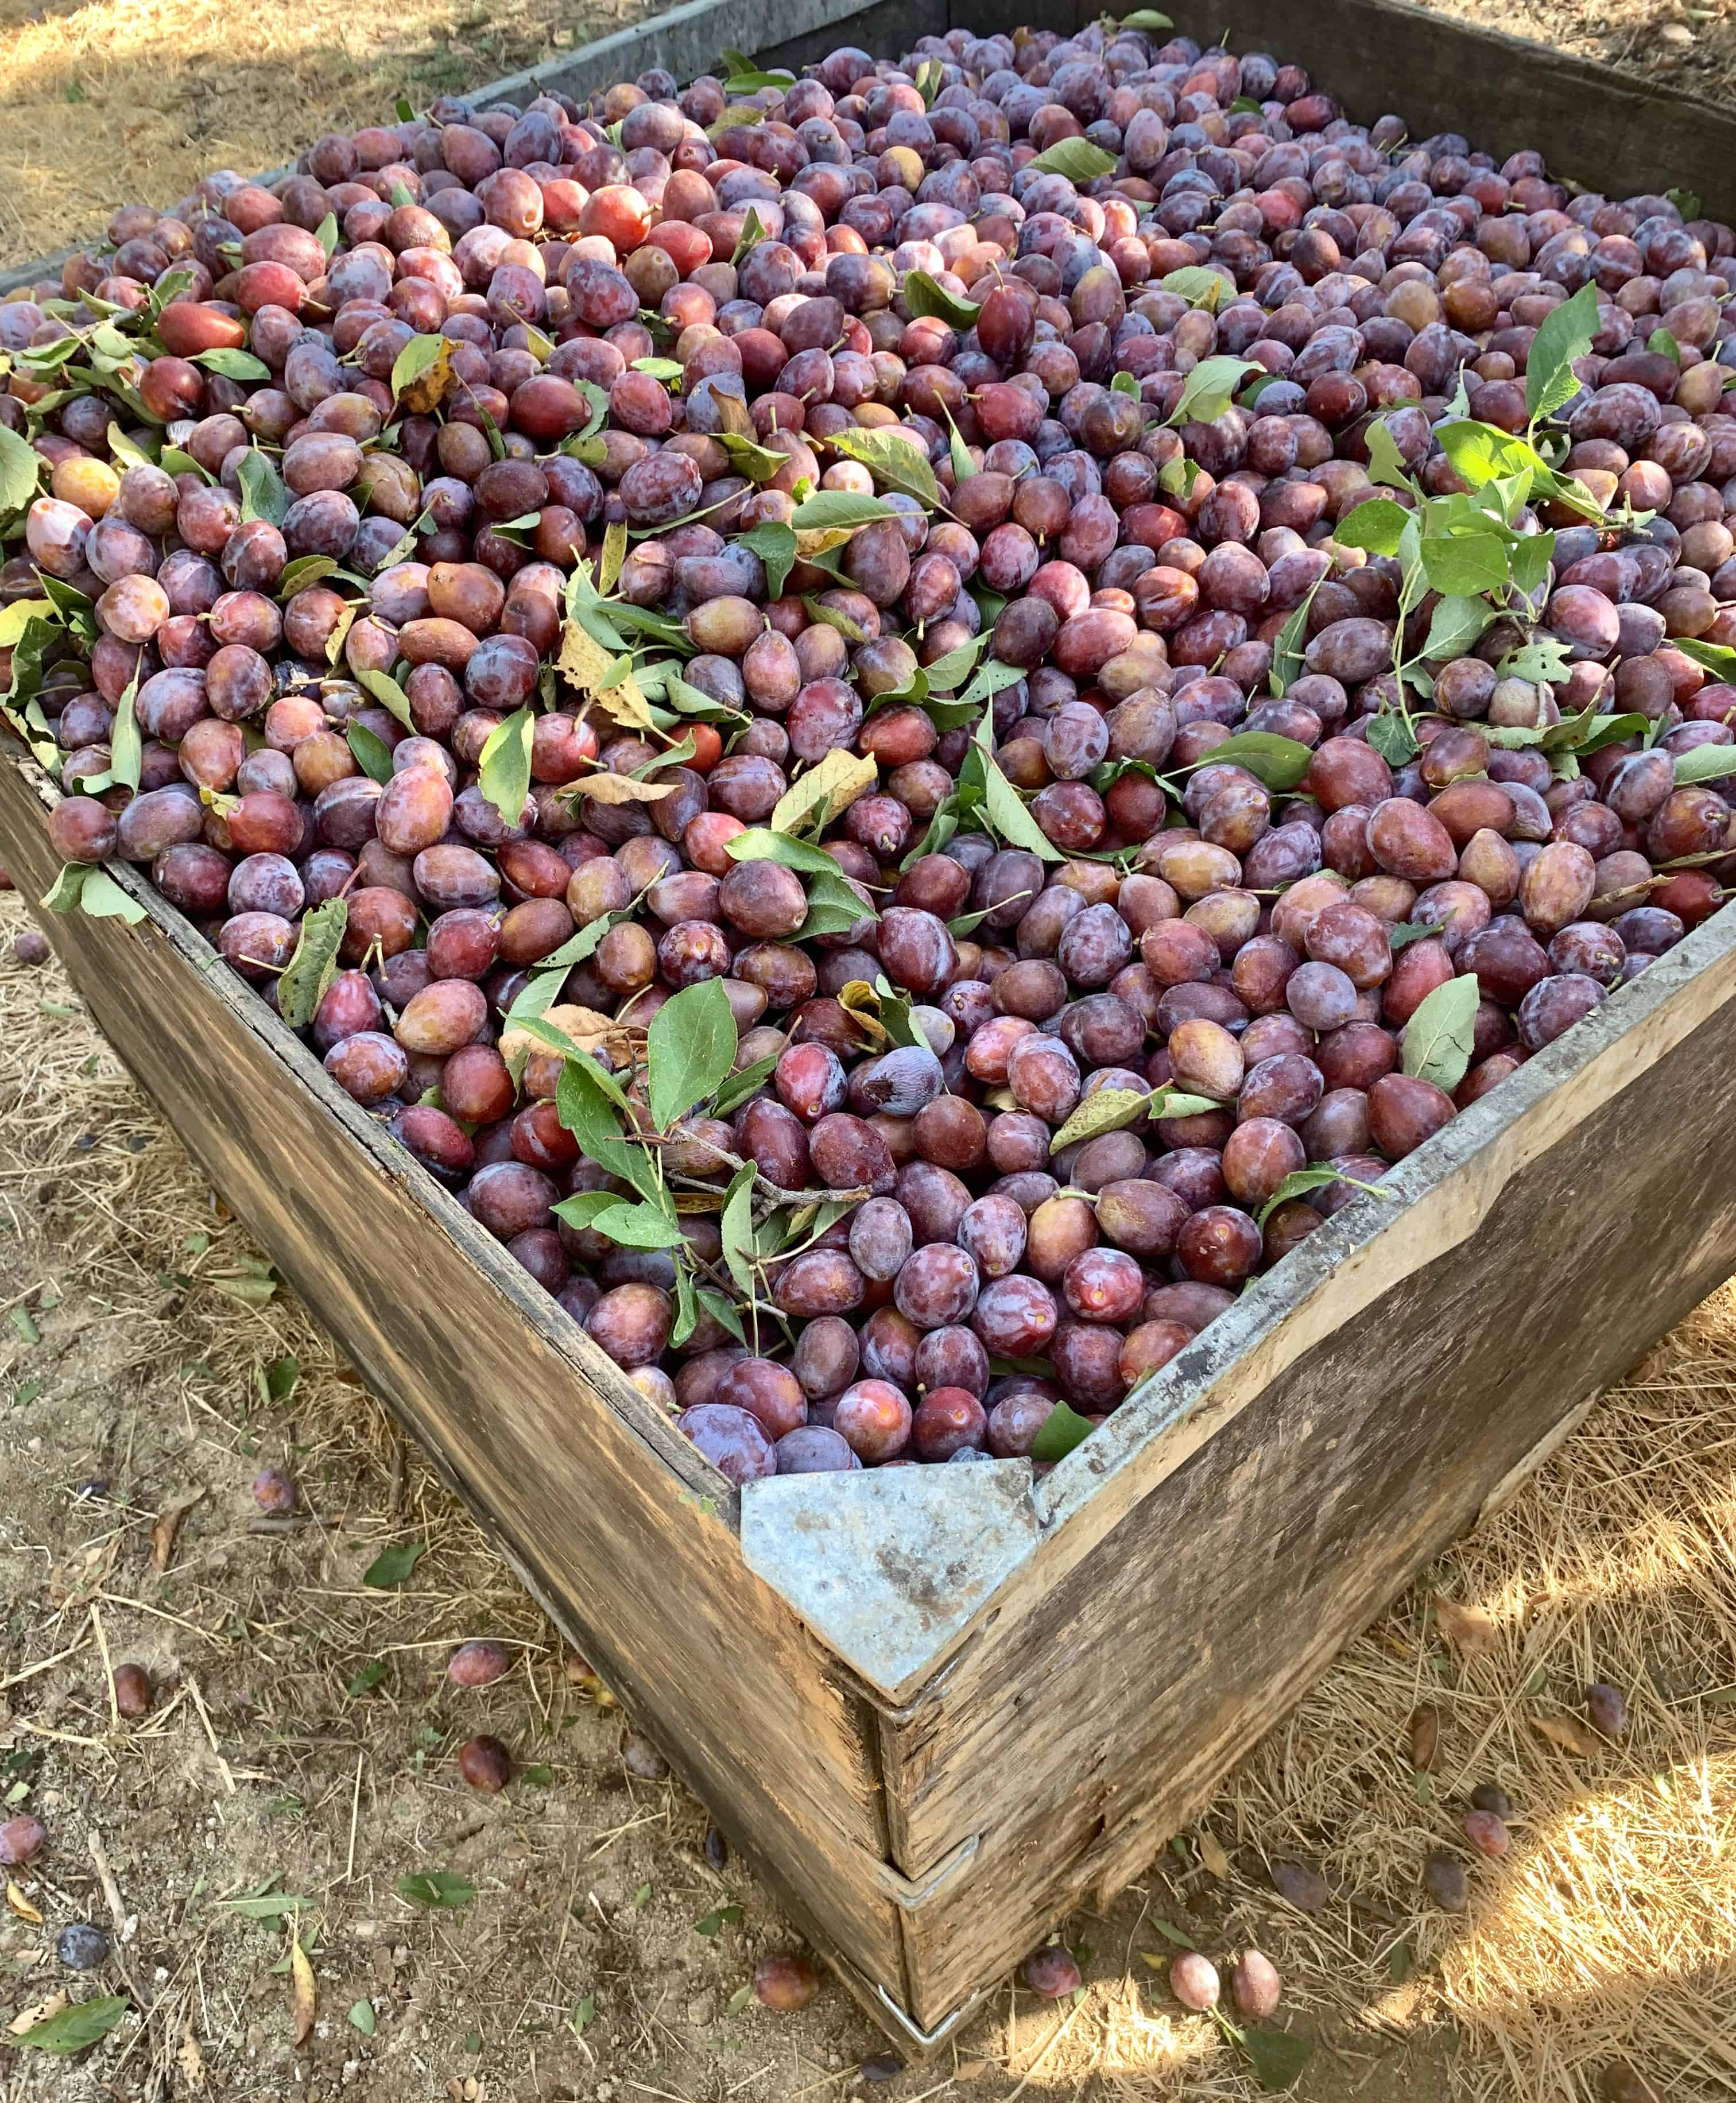 A full bin of freshly harvested prunes.